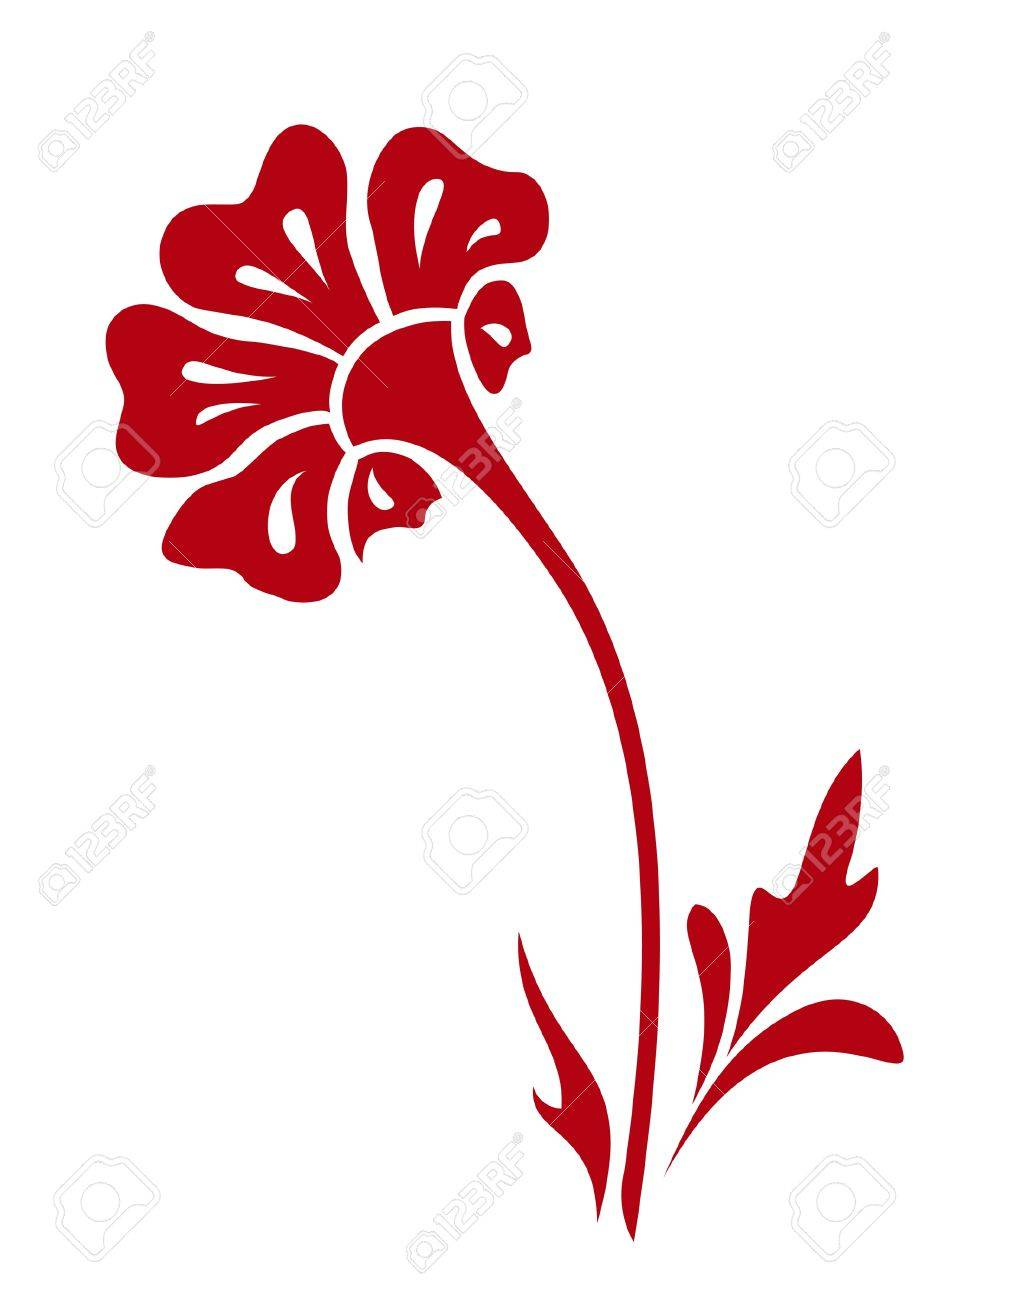 Abstract flower, hand-drawn element for design Stock Vector - 14581219